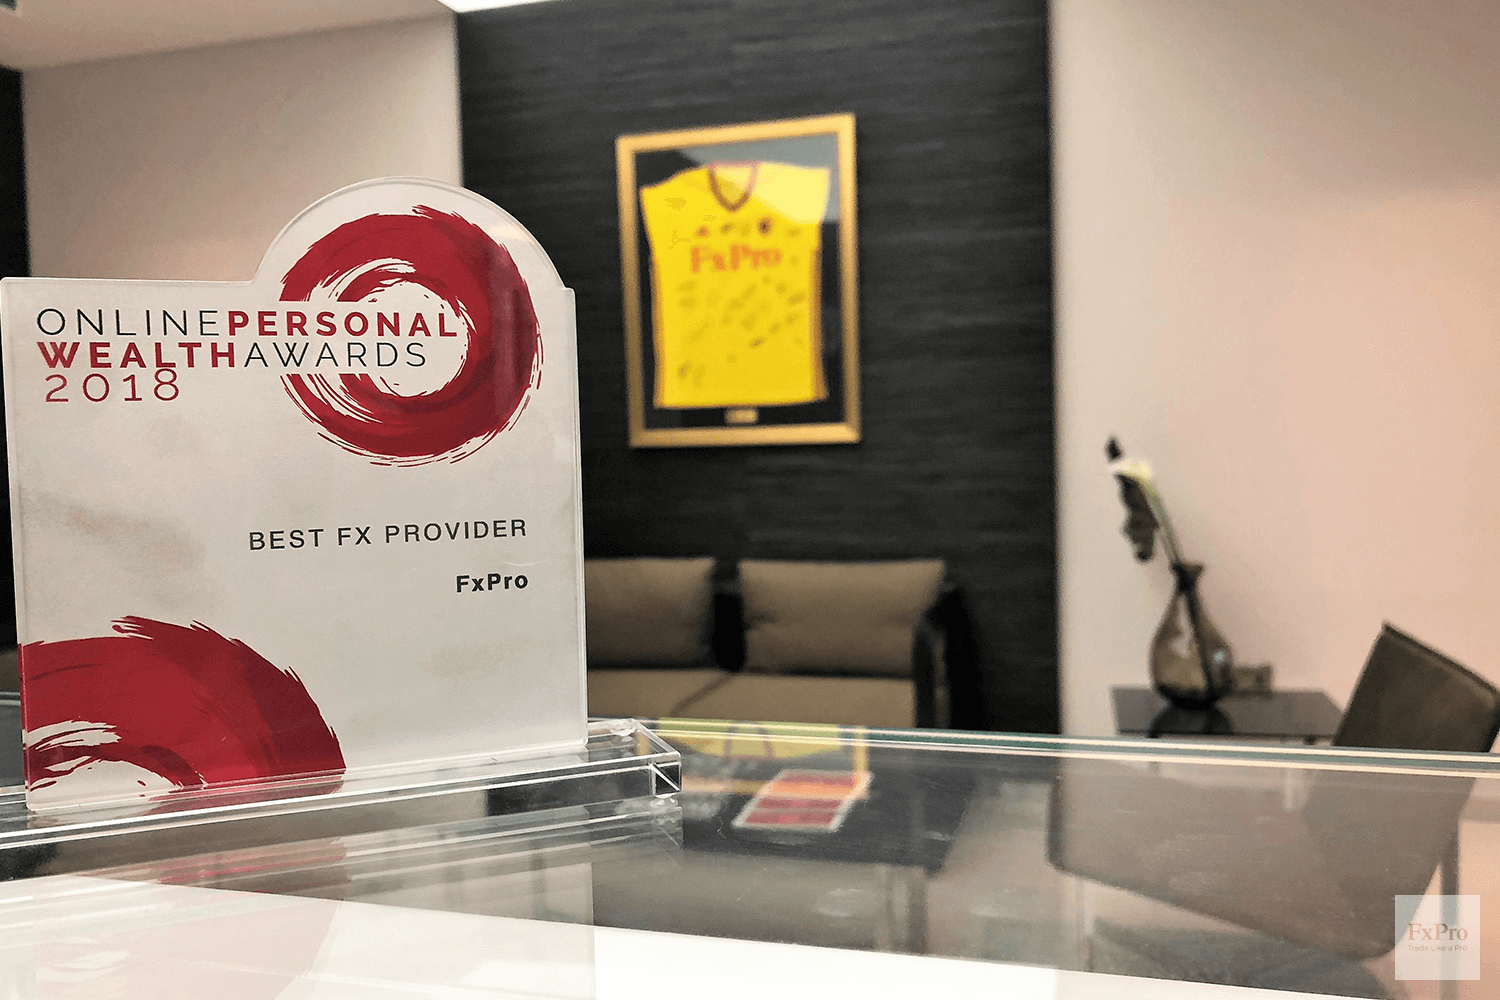 FxPro became a winner of the Online Personal Wealth Awards 2019